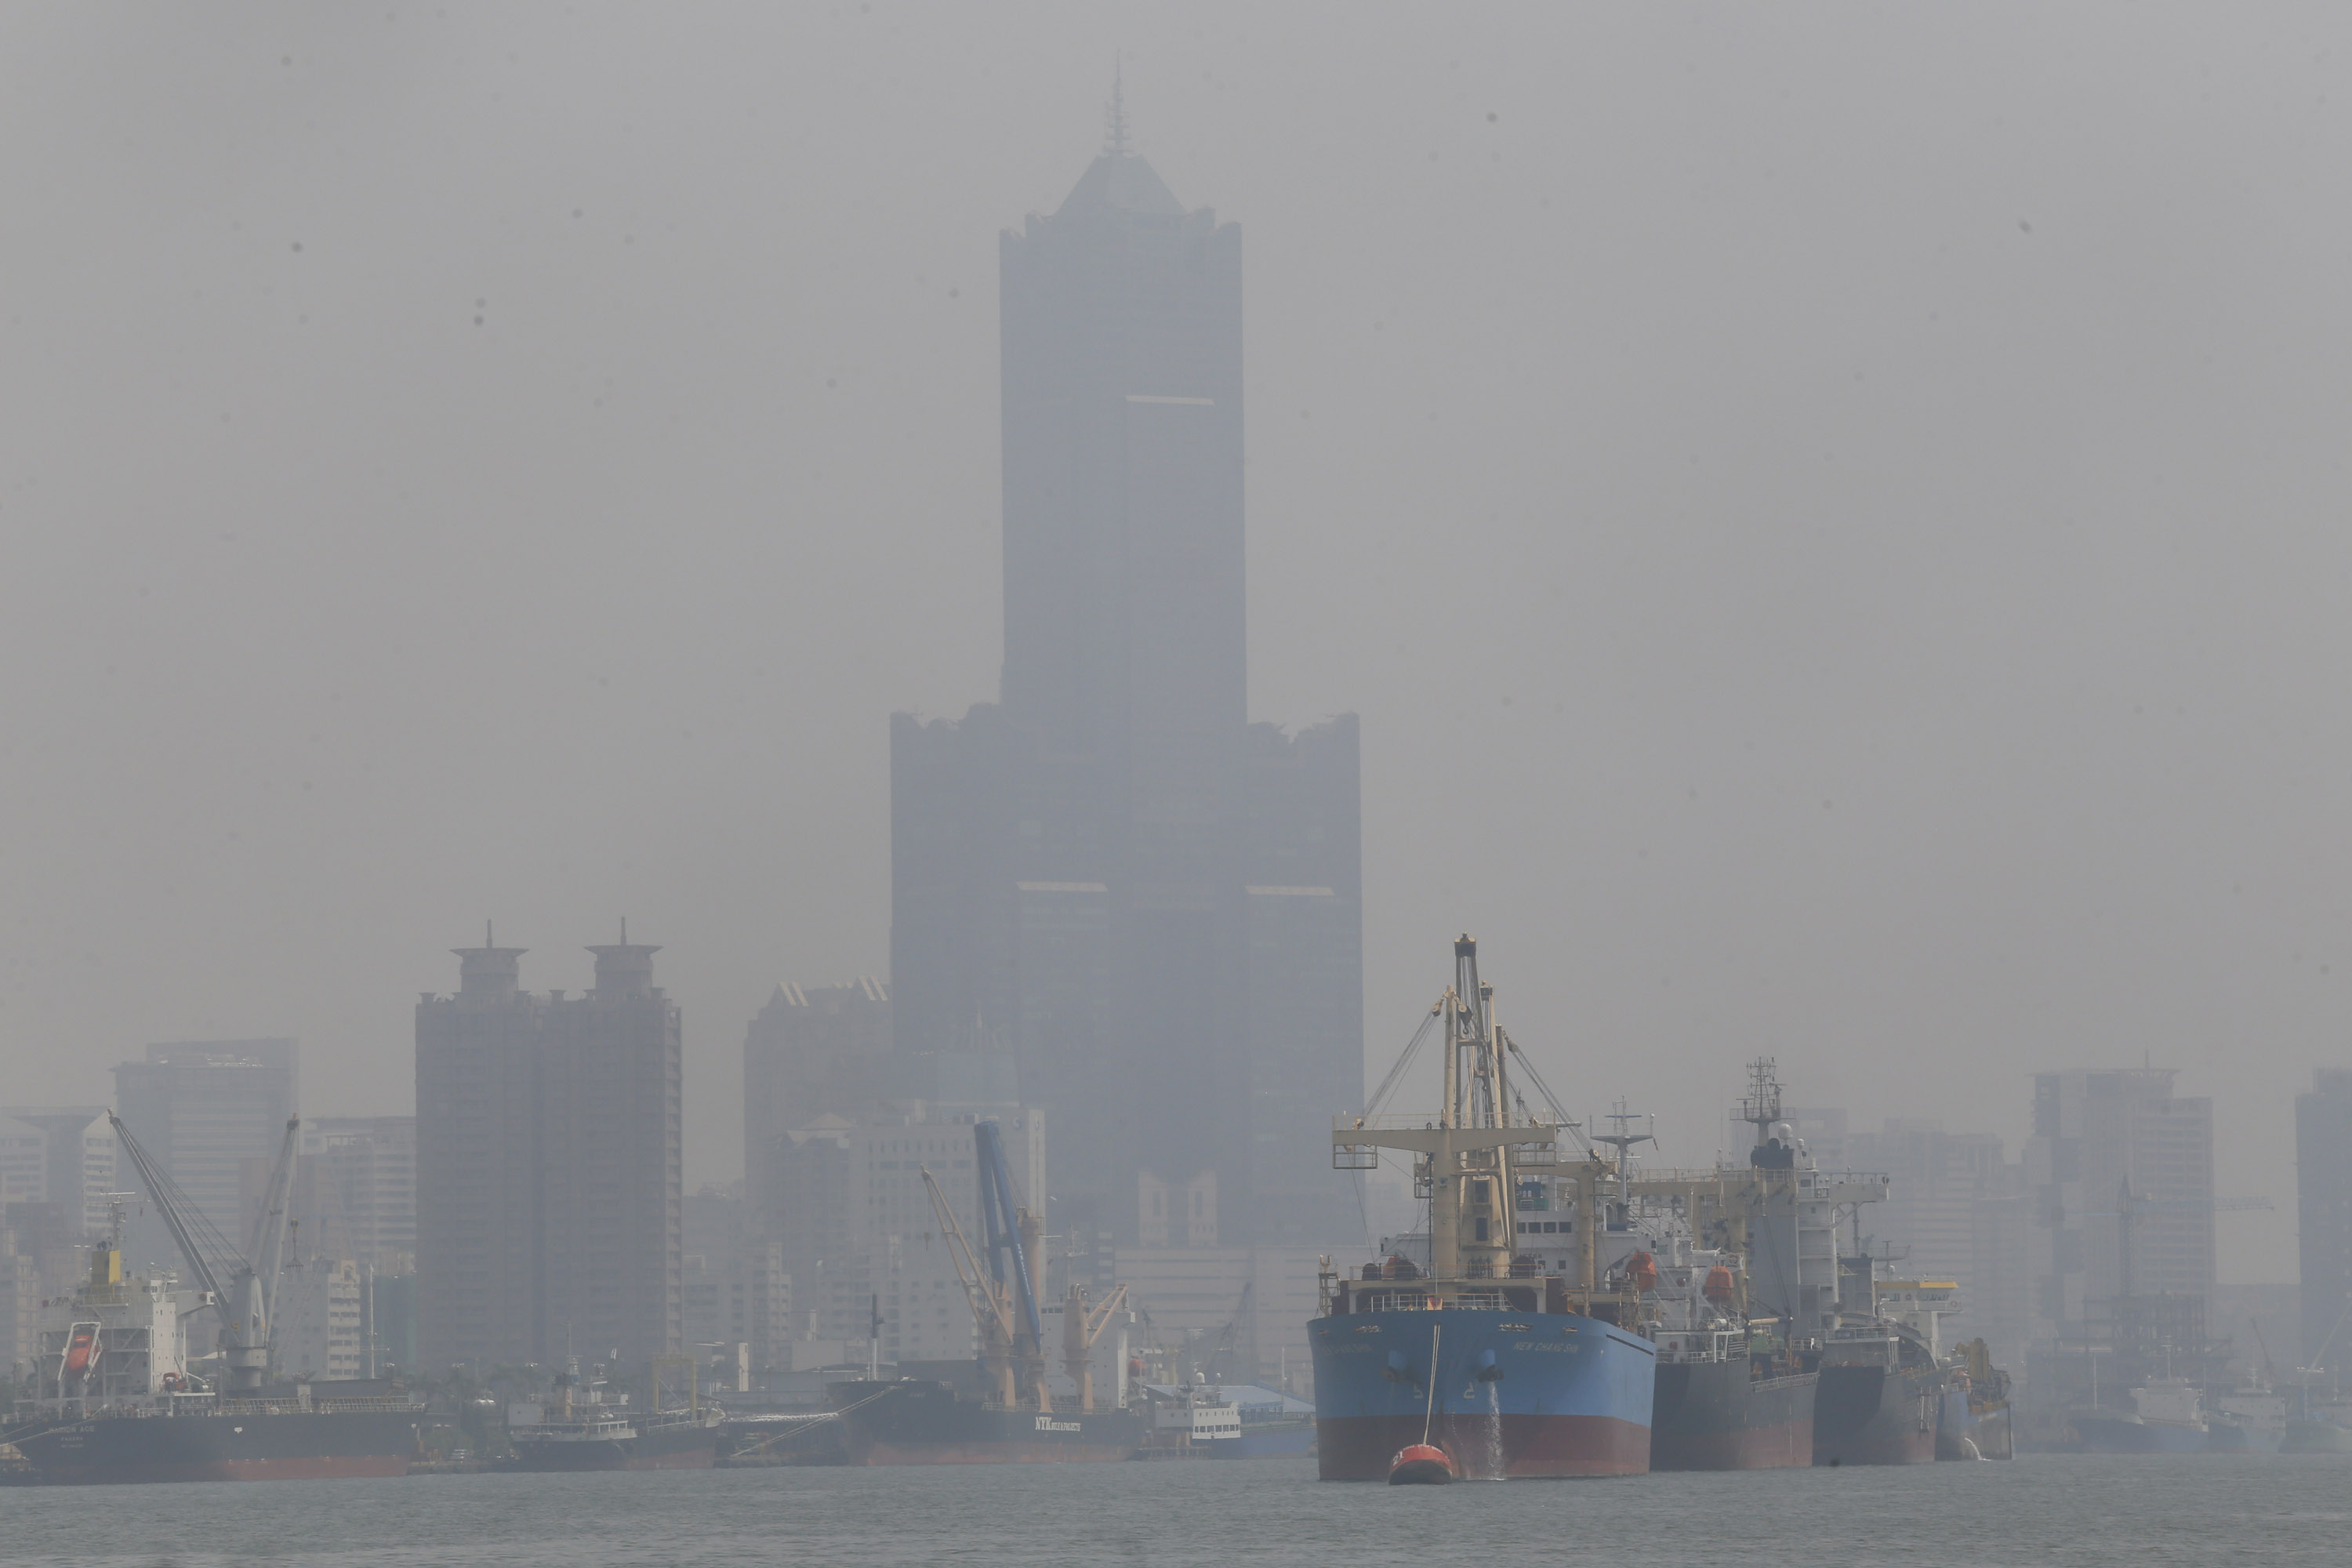 Air pollution in Kaohsiung.